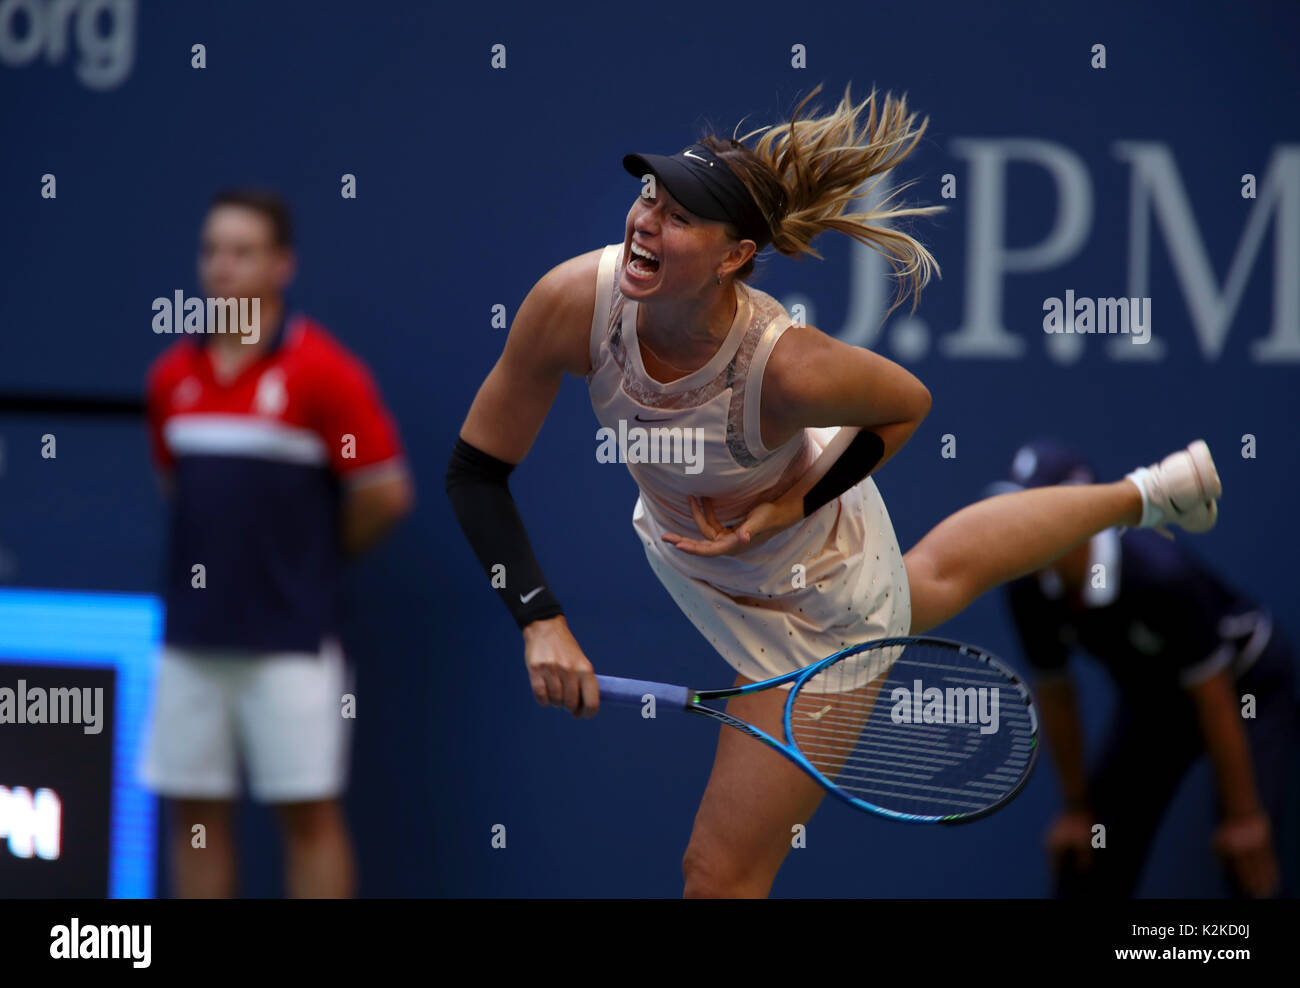 New York, United States. 30th Aug, 2017. US Open Tennis: New York, 30 August, 2017 - Maria Sharapova serving during her second round match against Timea Babos of Hungary during their second round match at the US Open in Flushing Meadows, New York. Sharapova won the match in three sets. Credit: Adam Stoltman/Alamy Live News - Stock Image